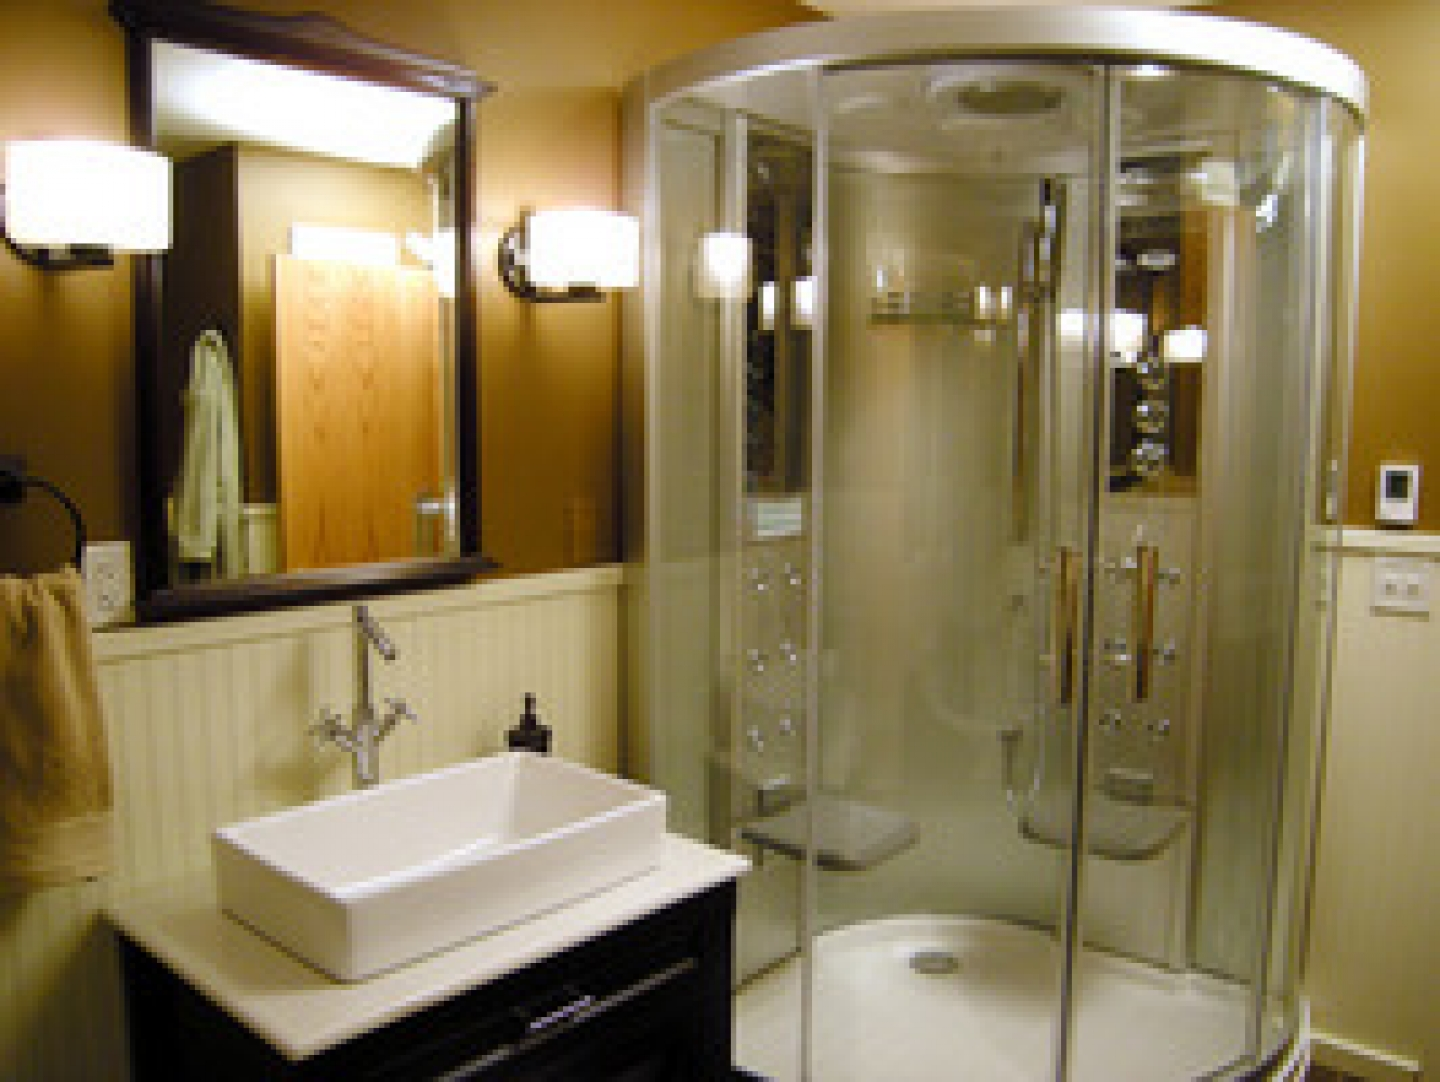 bathroom makeover ideas - Cheap Bathroom Makeover